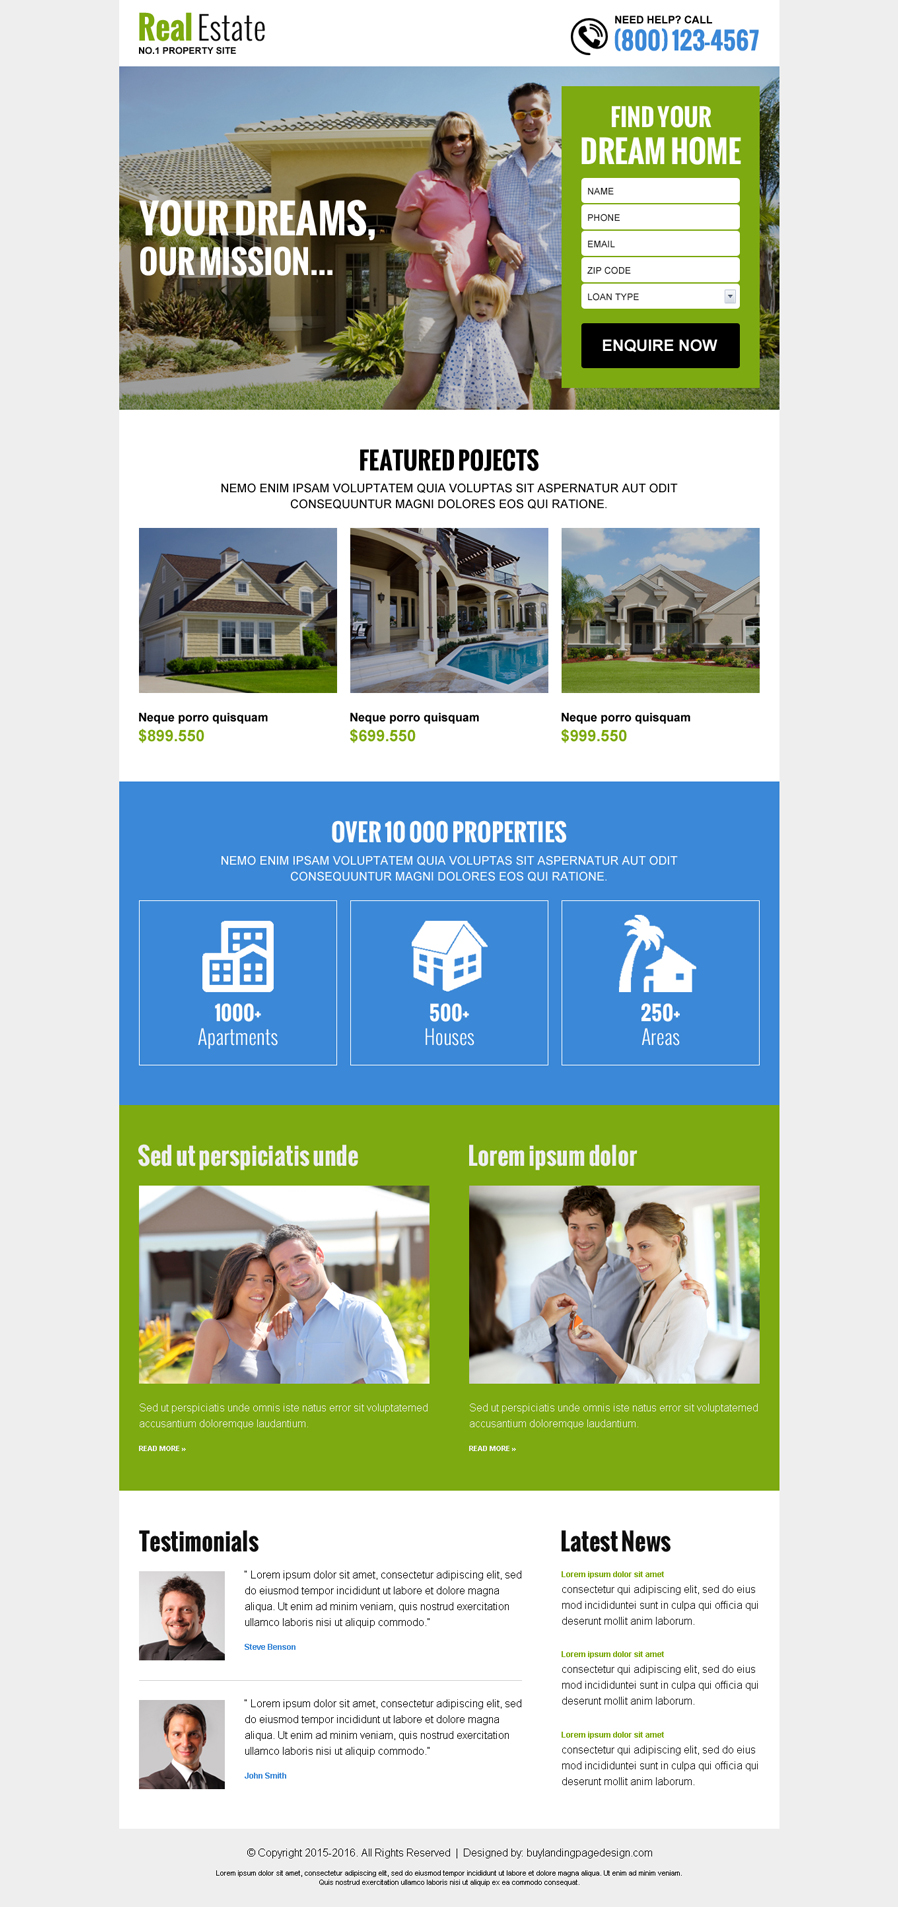 real-estate-free-quote-service-lead-gen-converting-landing-page-design-013